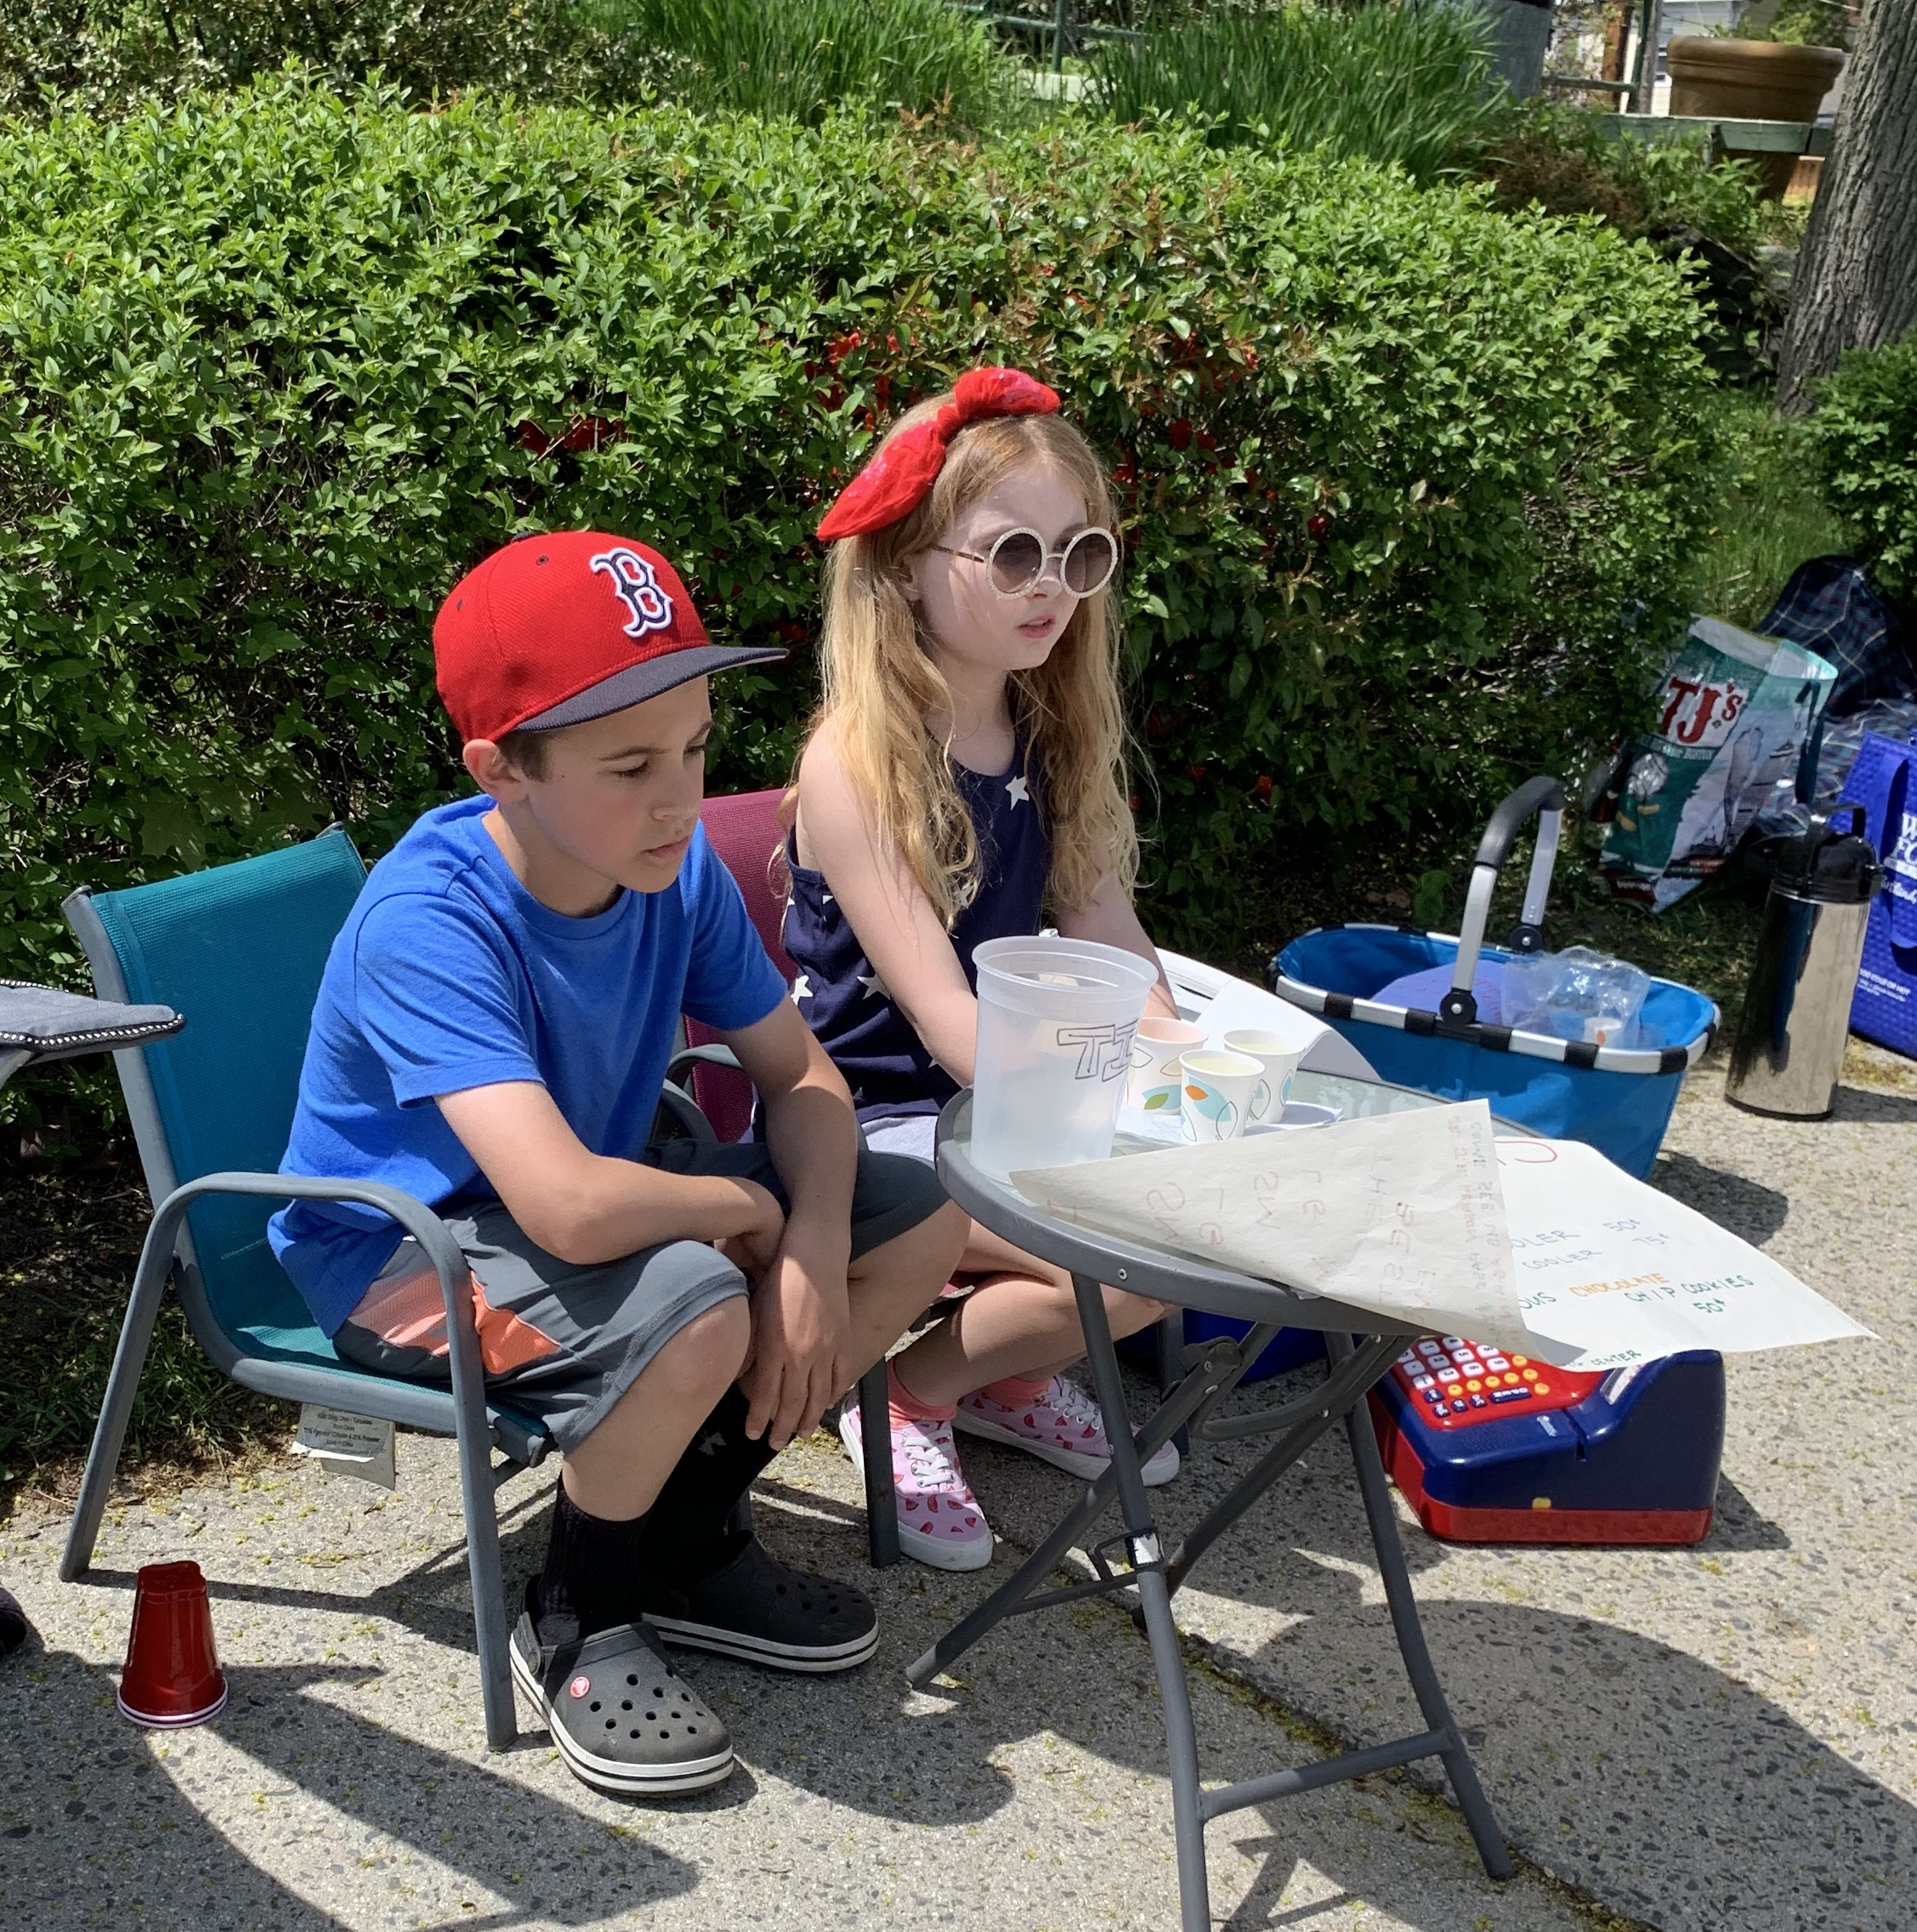 Liam and his friend set up the perfect spot for their lemonade stand at the Memorial Day parade